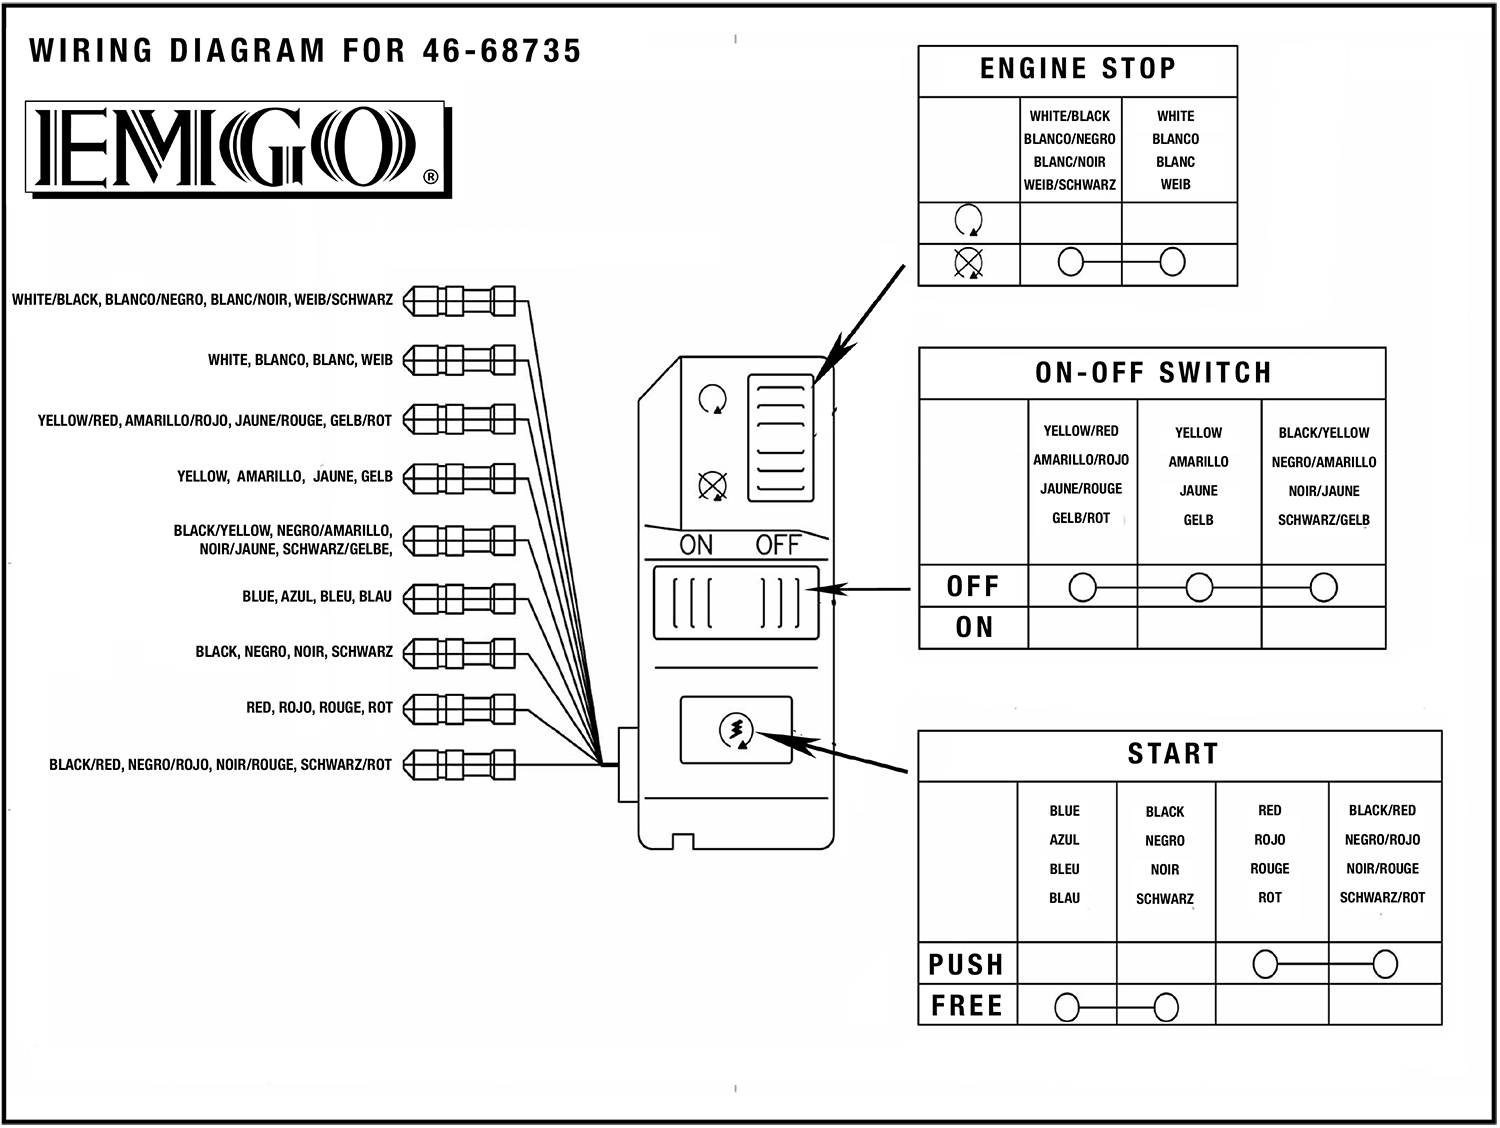 Multiswitch Wiring Diagram - Wiring Diagram Services •